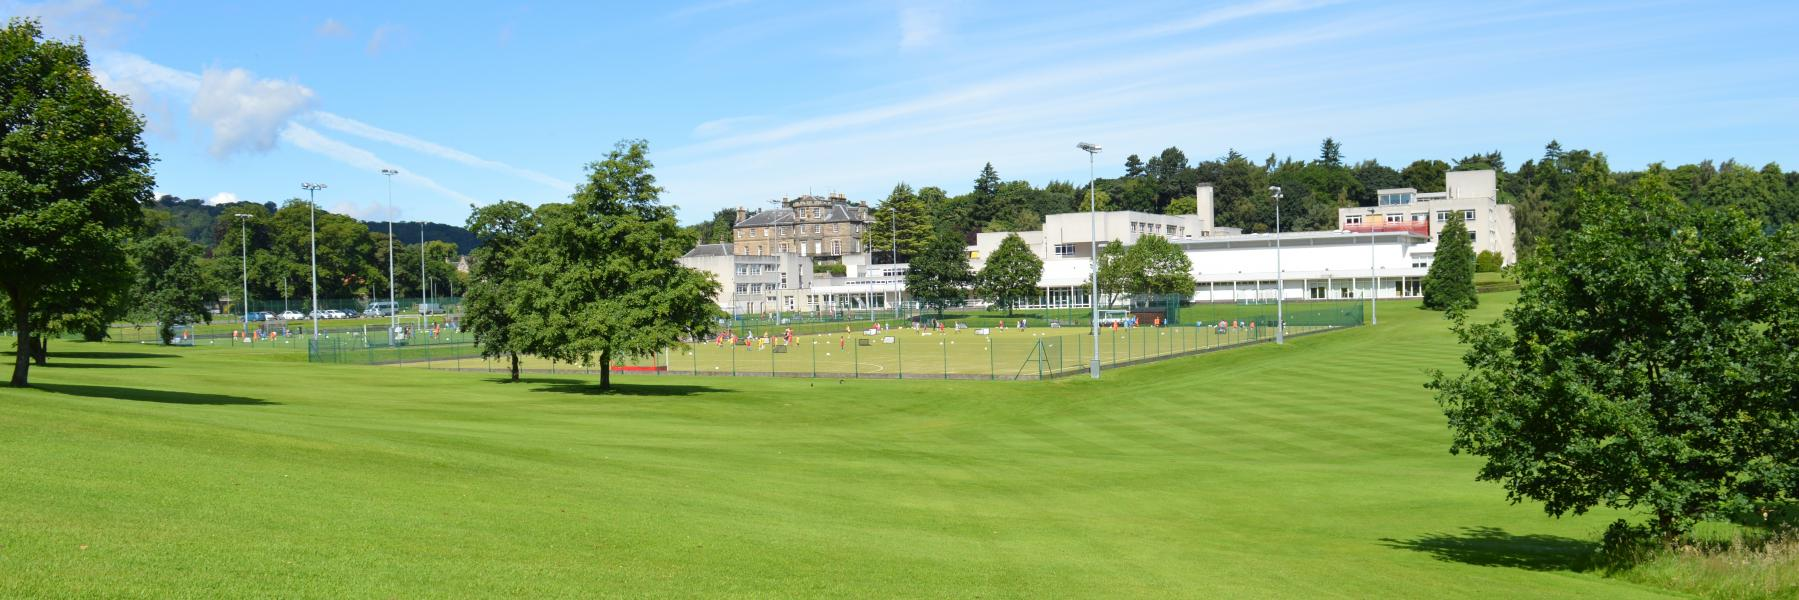 The Mary Erskine School grounds in Edinburgh